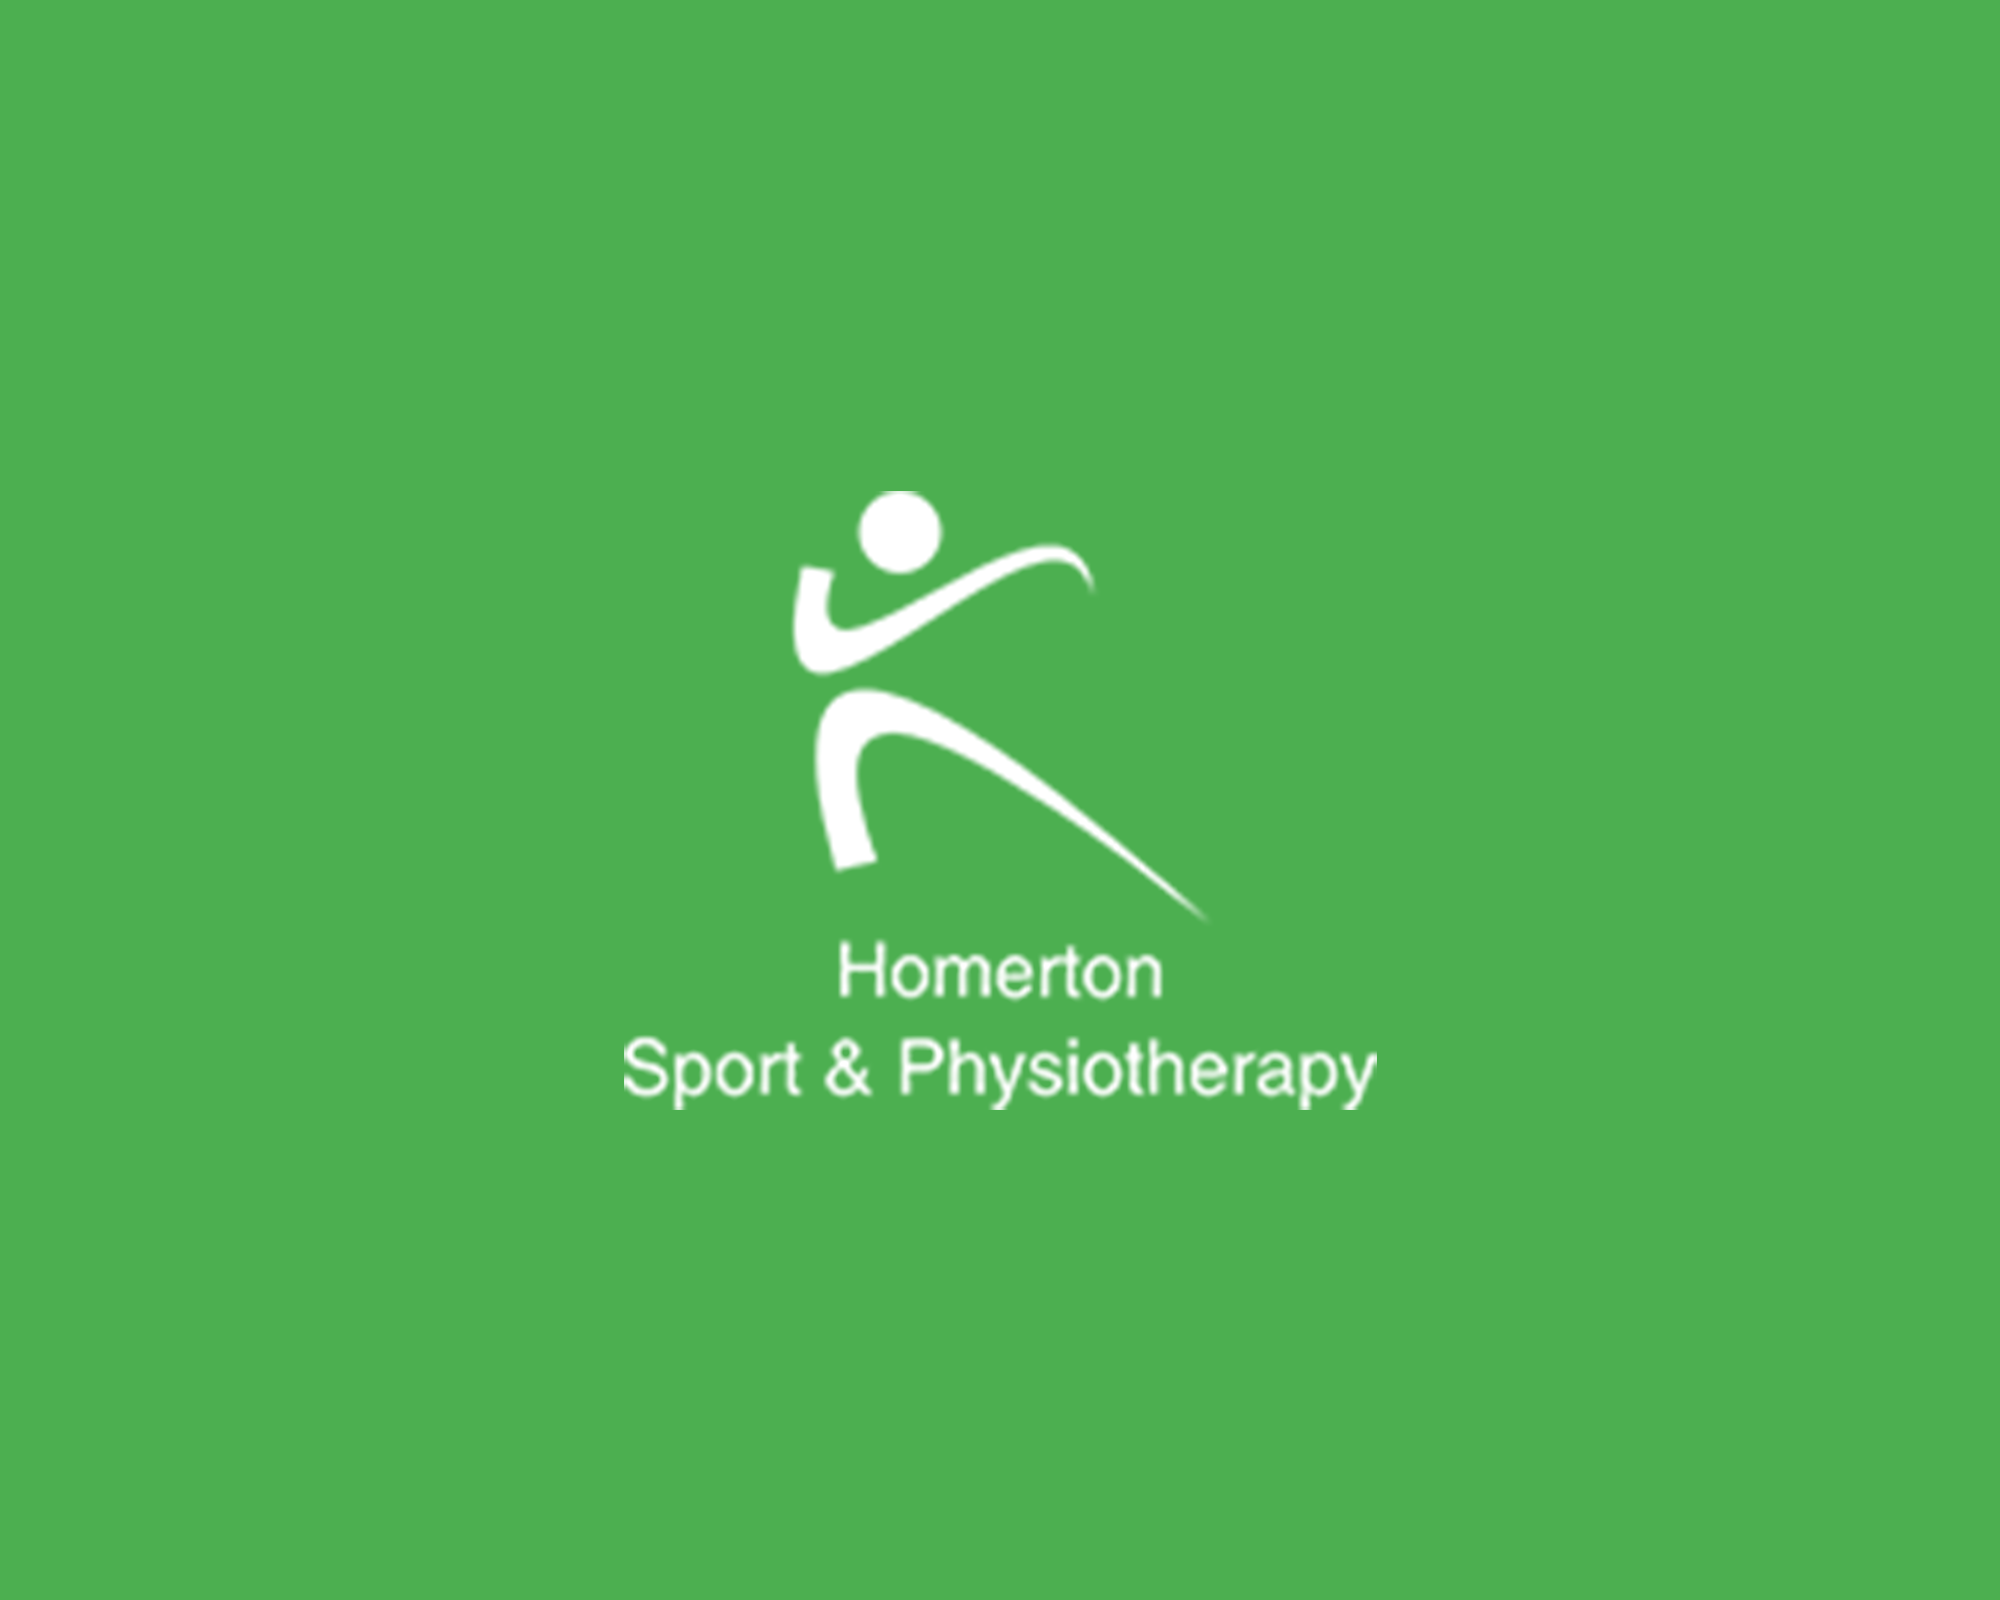 homerton sport & physiotherapy Logo